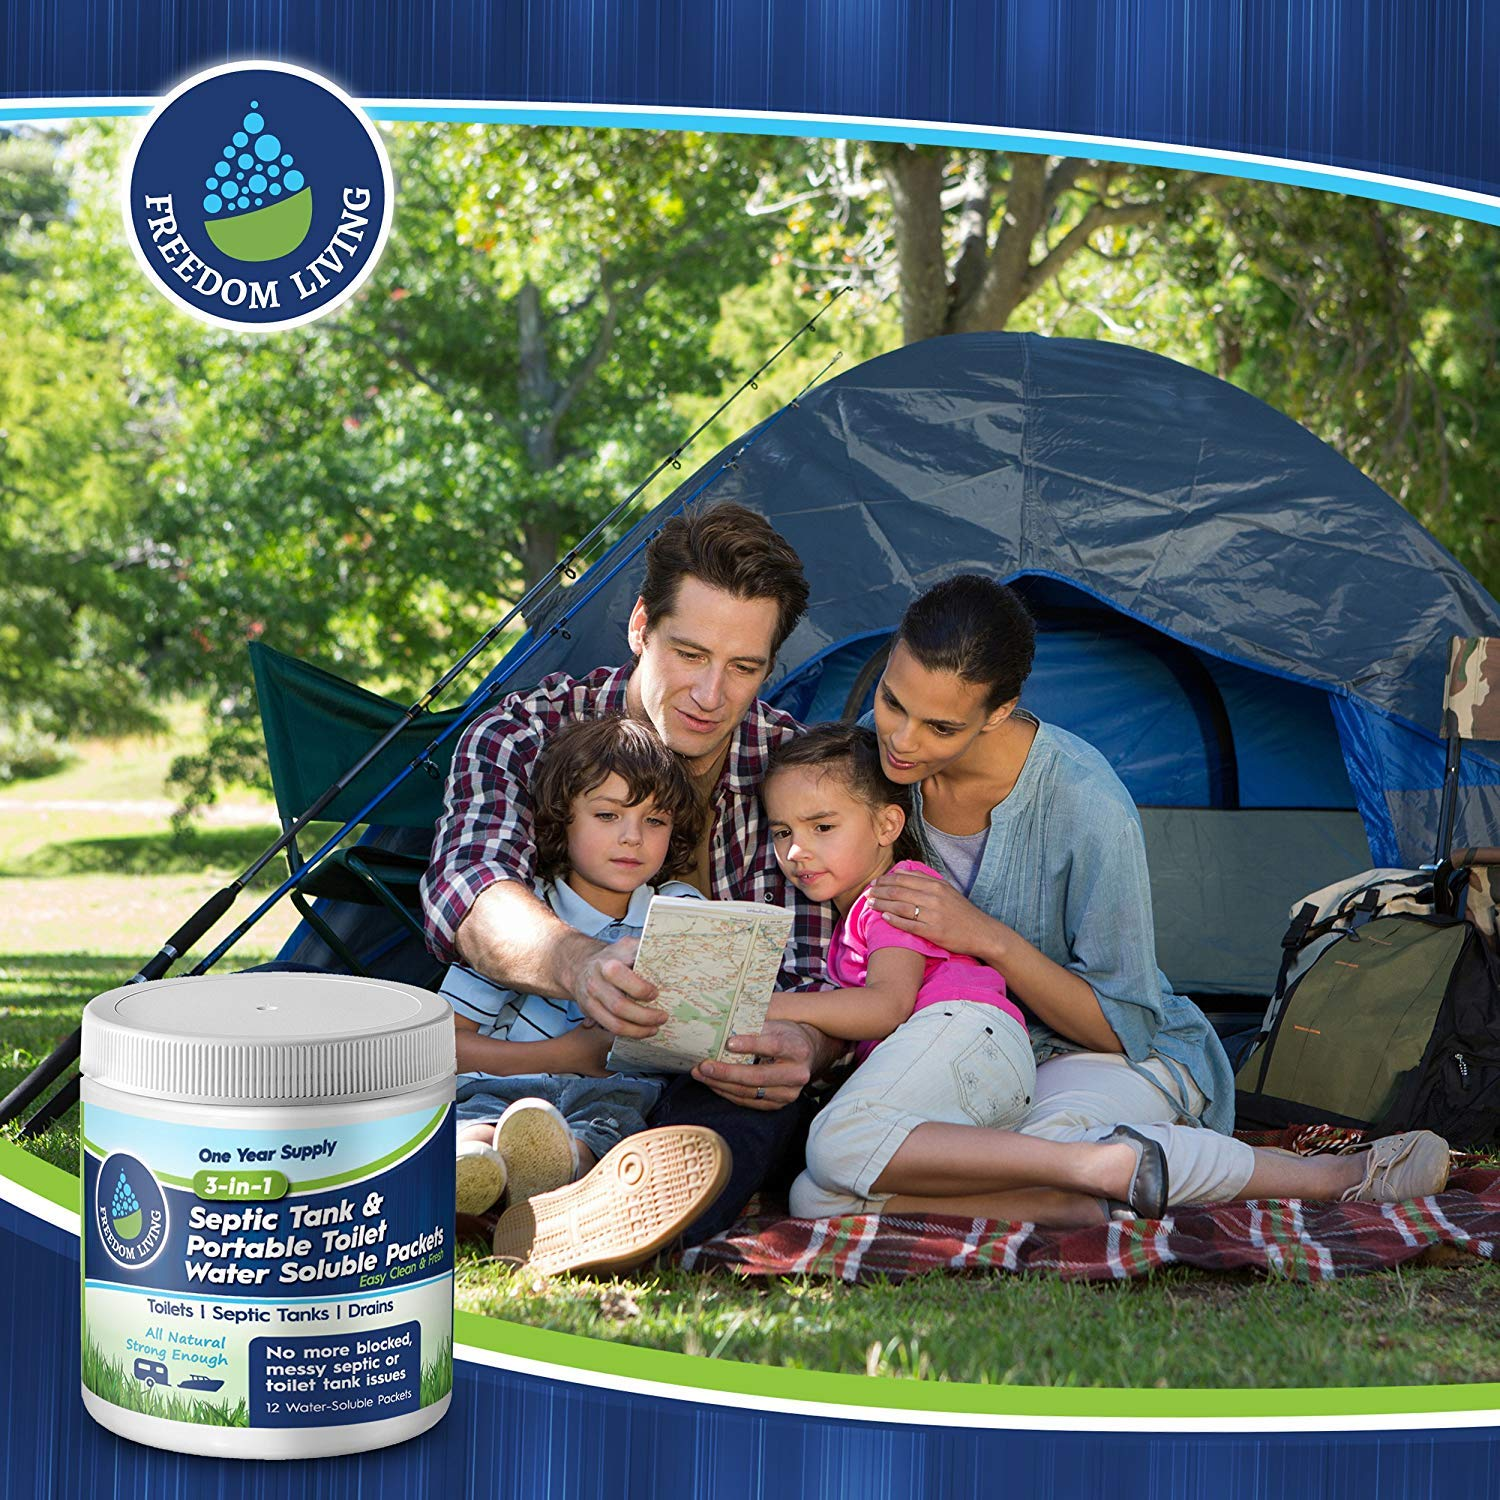 Septic Tank Treatment & Holding Tank Deodorizer Tablets, 1 year supply, Bio clean Packs for RV, Marine Portable Toilets, toilet cleaning chemicals, All Natural. Must have RV accessories by Freedom Living (Image #7)